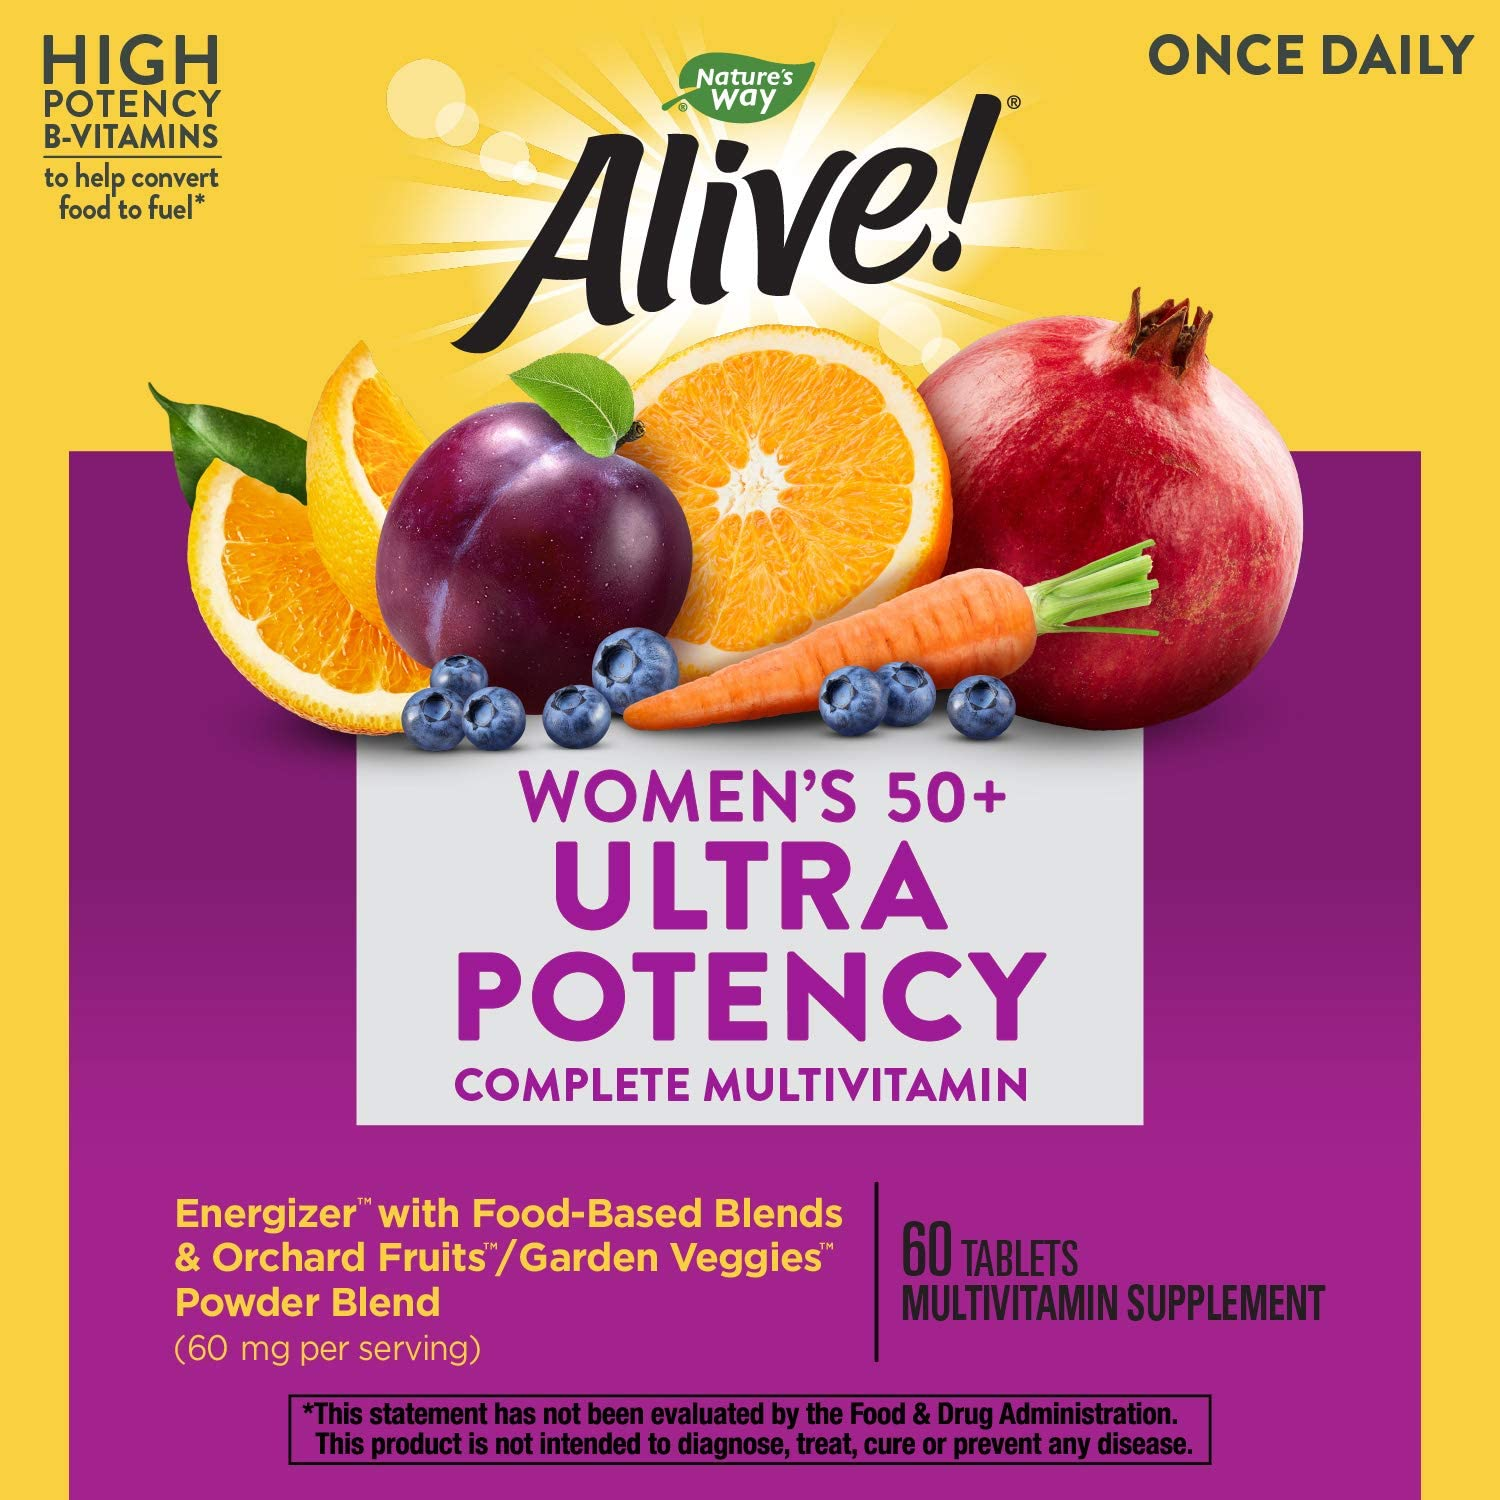 Nature's Way Alive! Once Daily Women's 50+ Multivitamin, Ultra Potency, Food-Based Blend, 60 Tablets: Health & Personal Care